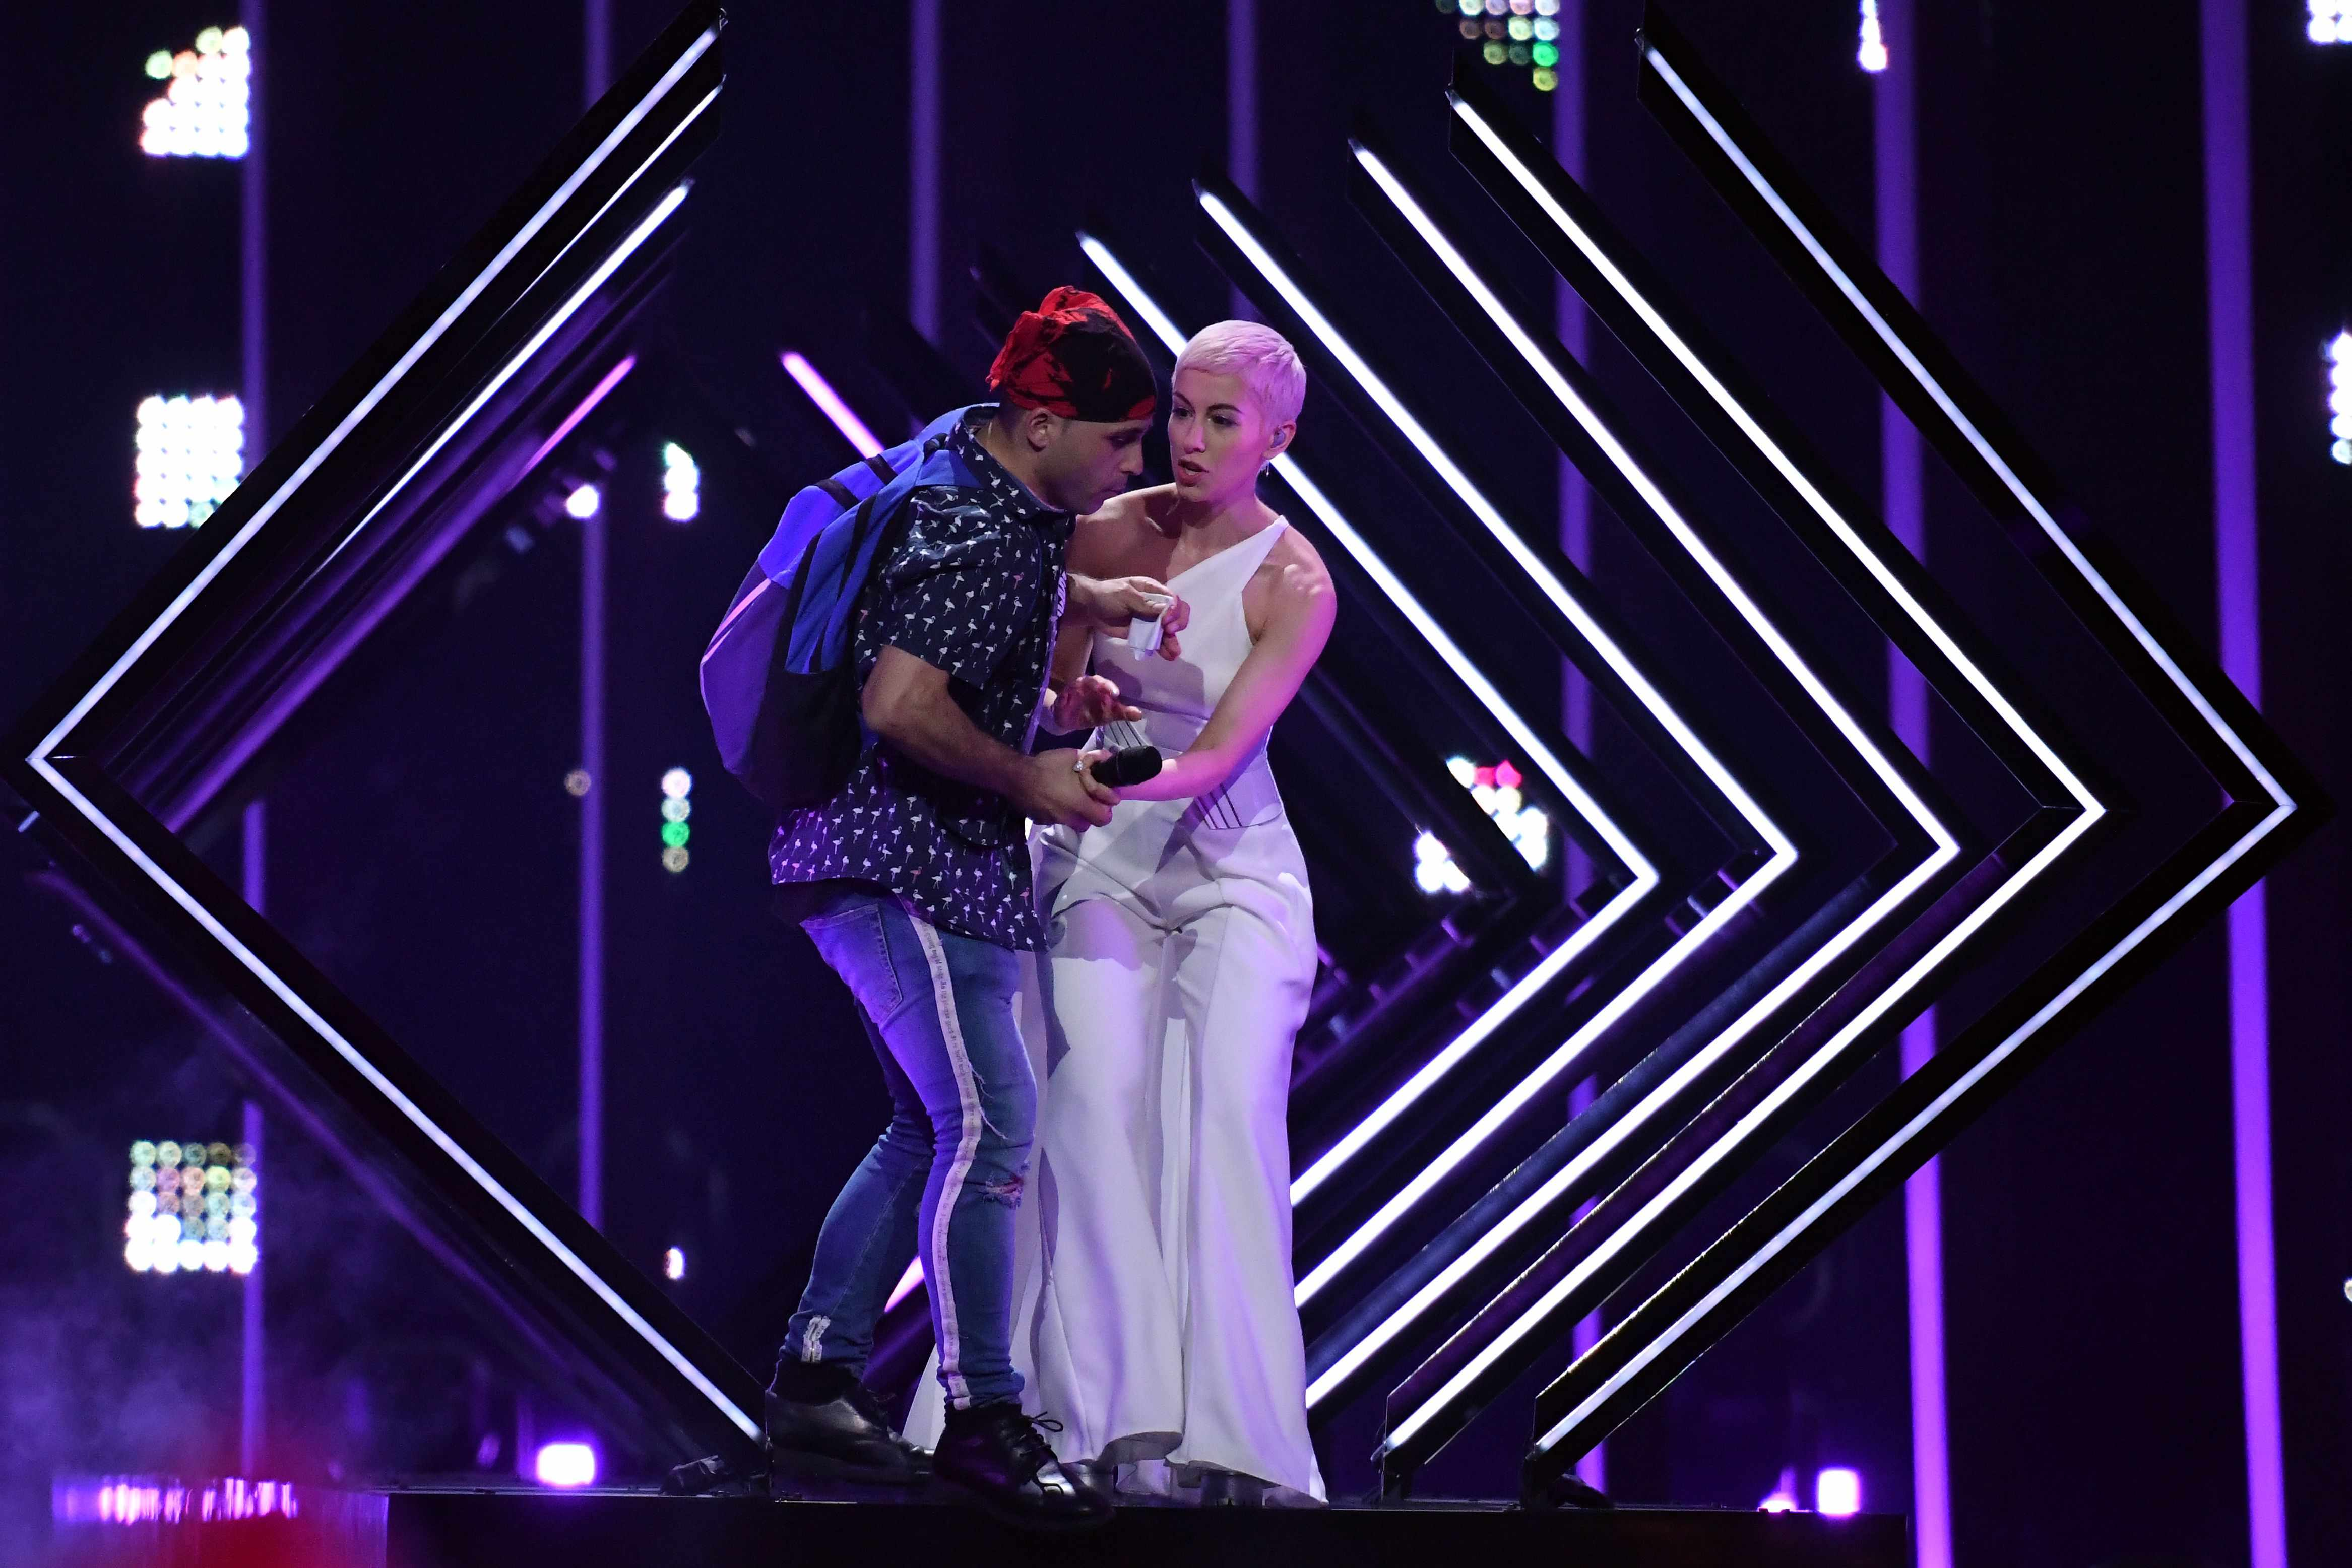 """A man takes the microphone from Britain's singer Susanna Marie Cork aka SuRie as she performs """"Storm"""" during the final of the 63rd edition of the Eurovision Song Contest 2018 at the Altice Arena in Lisbon, on May 12, 2018. (Photo by Francisco LEONG / AFP)        (Photo credit should read FRANCISCO LEONG/AFP/Getty Images)"""